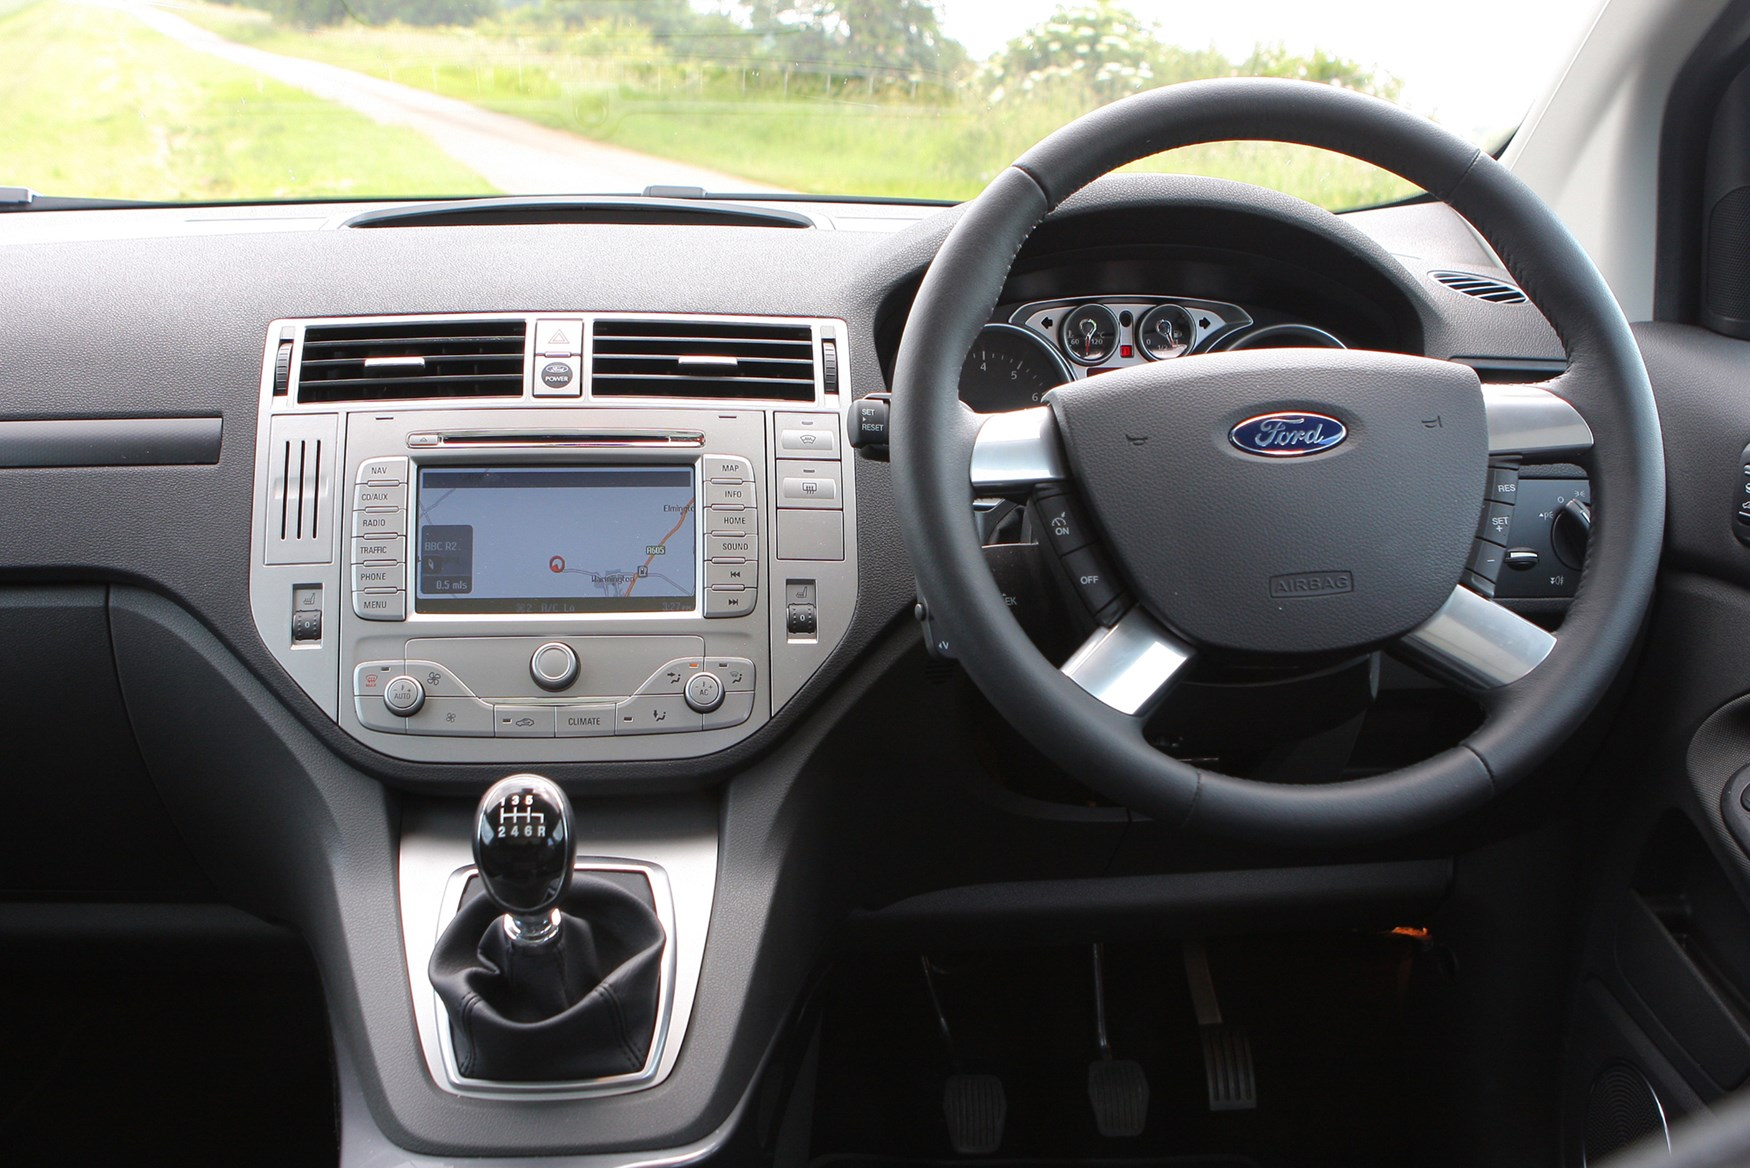 Image Result For Ford Kuga Interior Scan